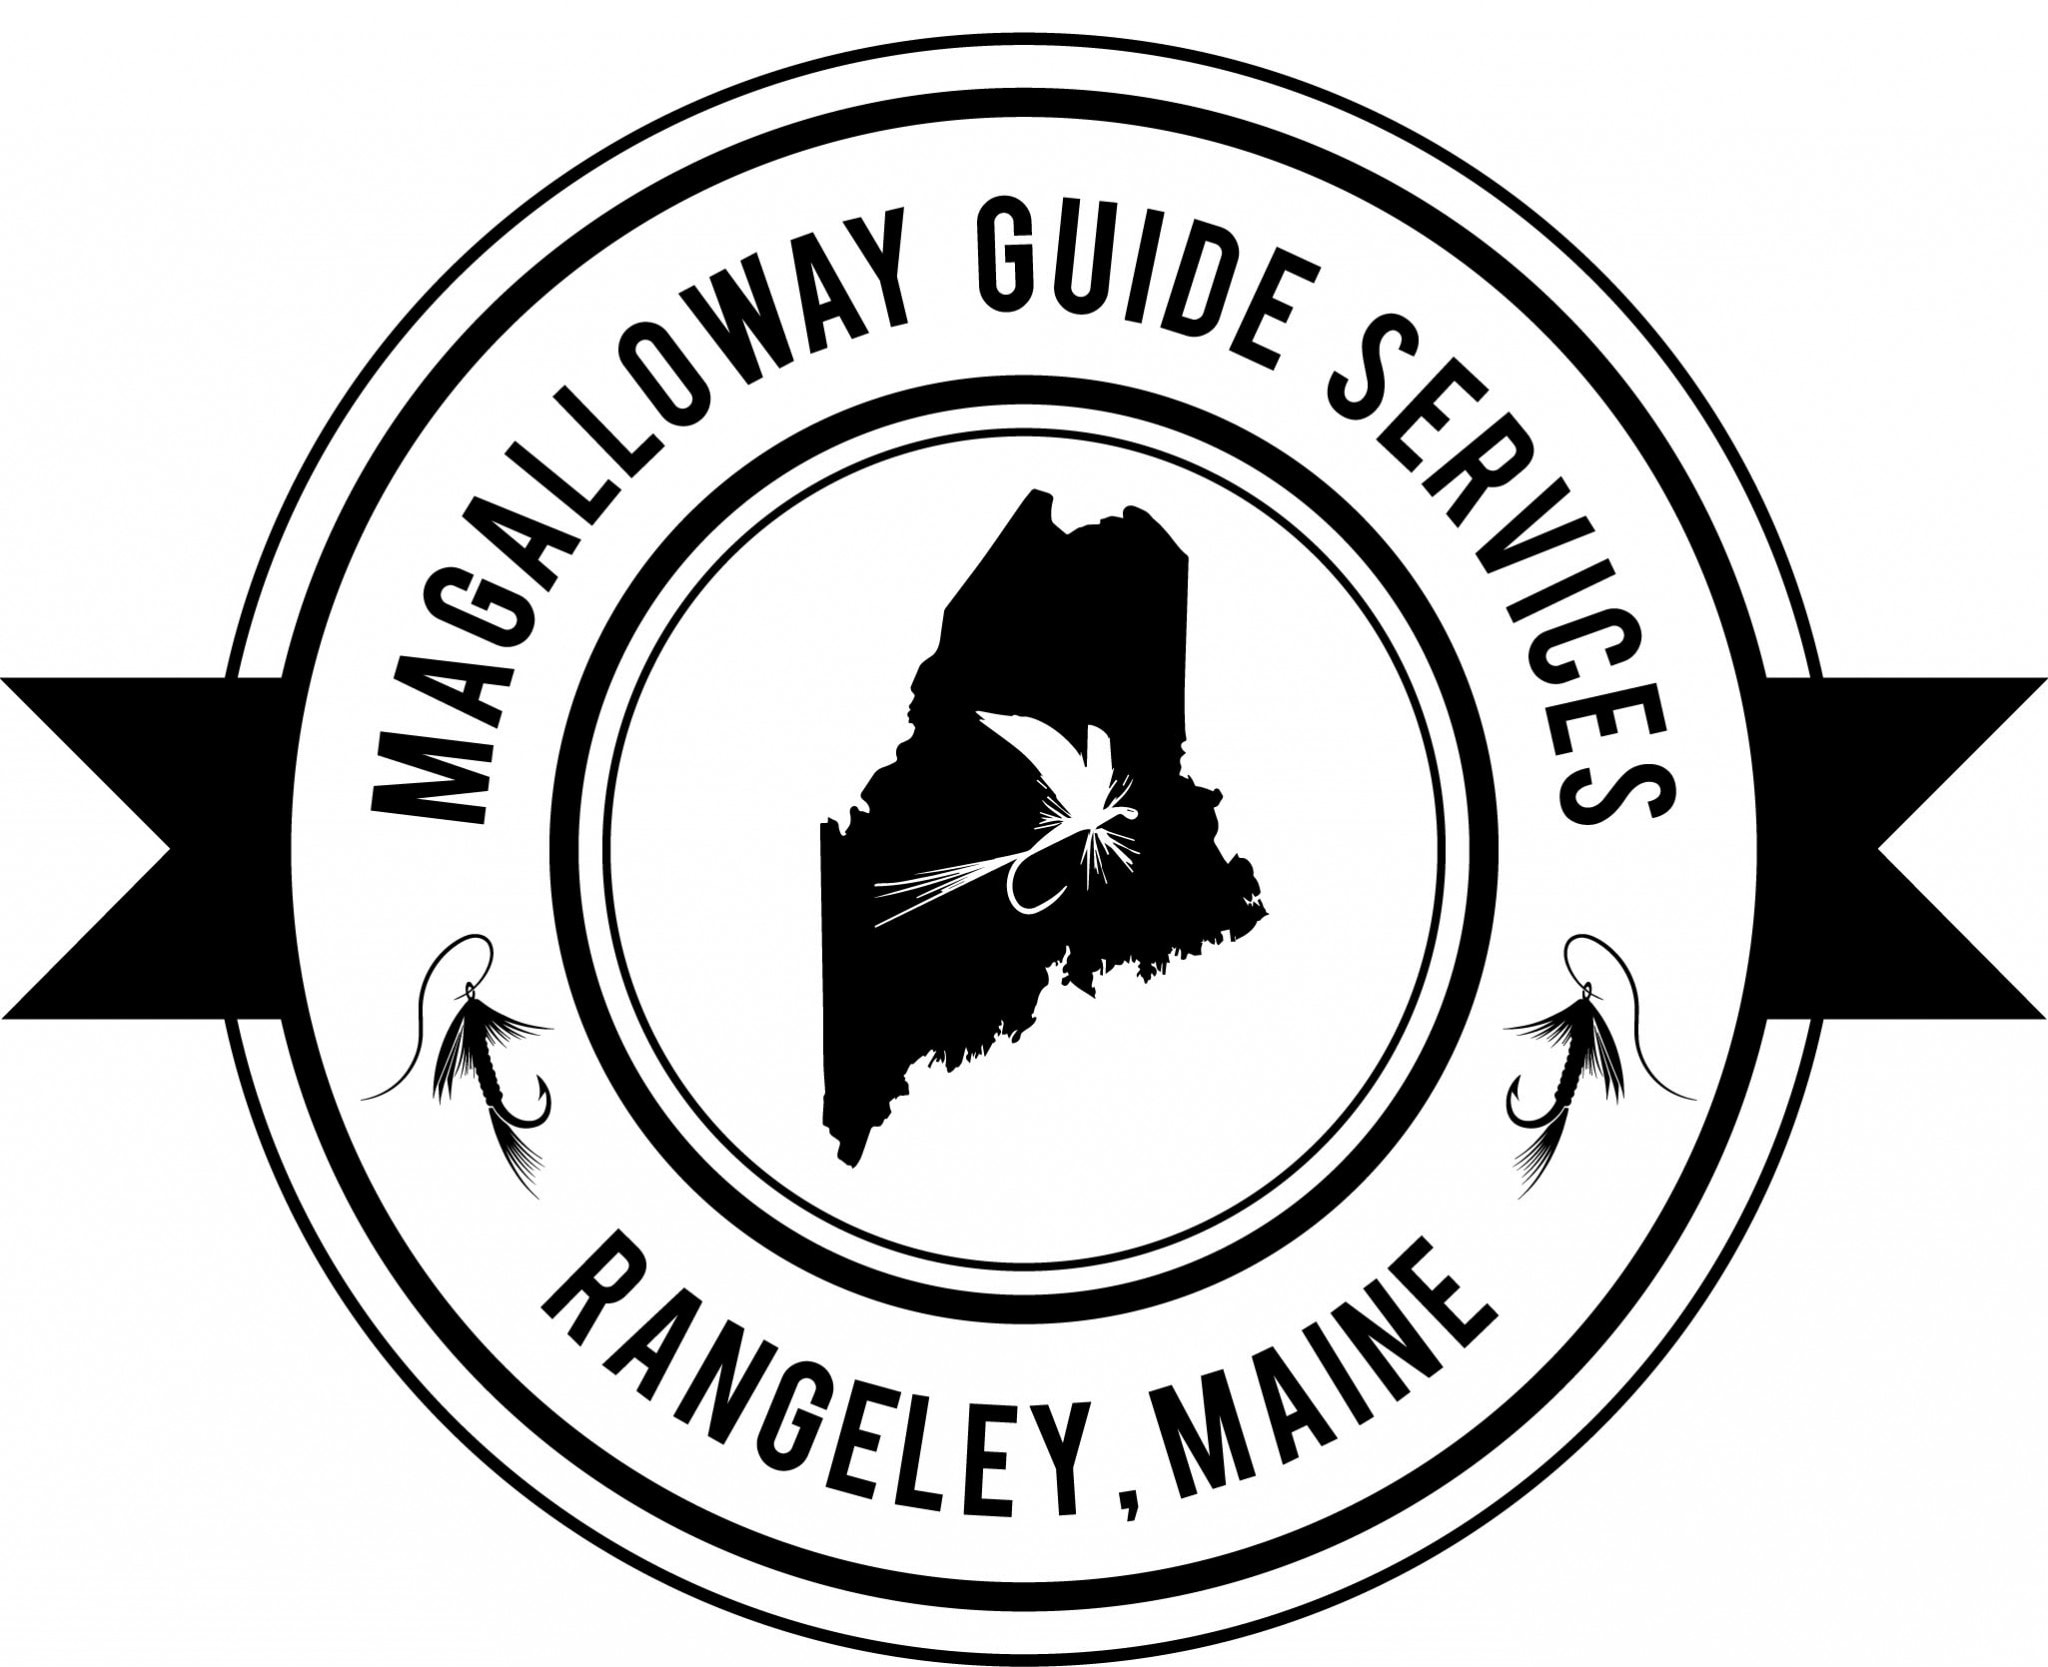 Magalloway Guide Service